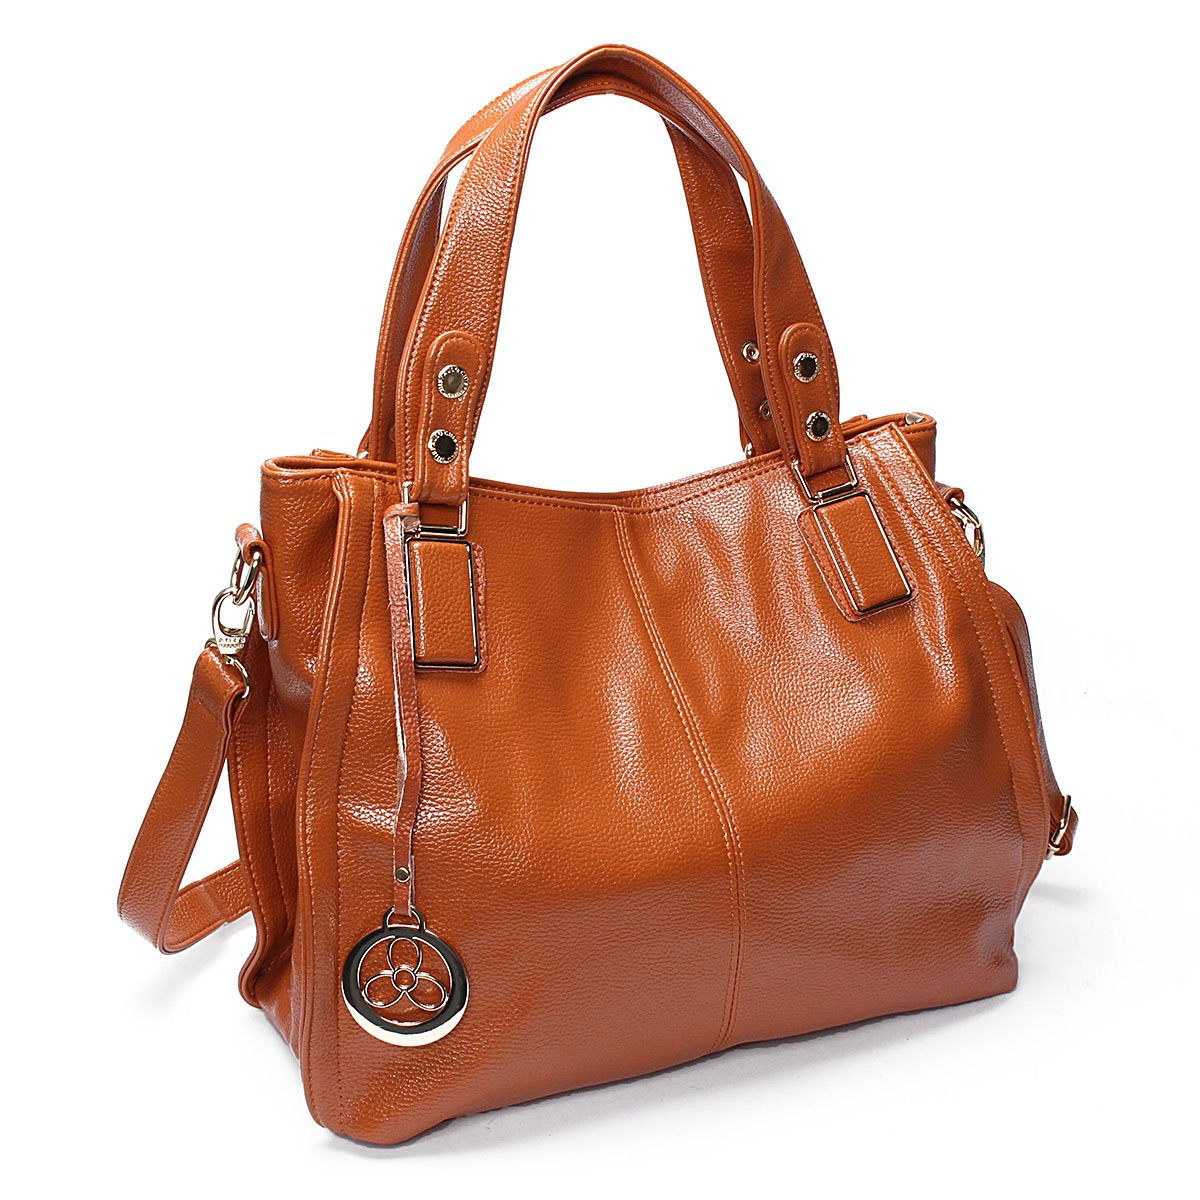 cfe619a12742 OURBAG Women Leather Handbags Fashion Top Handle Bag Cross body Shoulder  Bag for Ladies